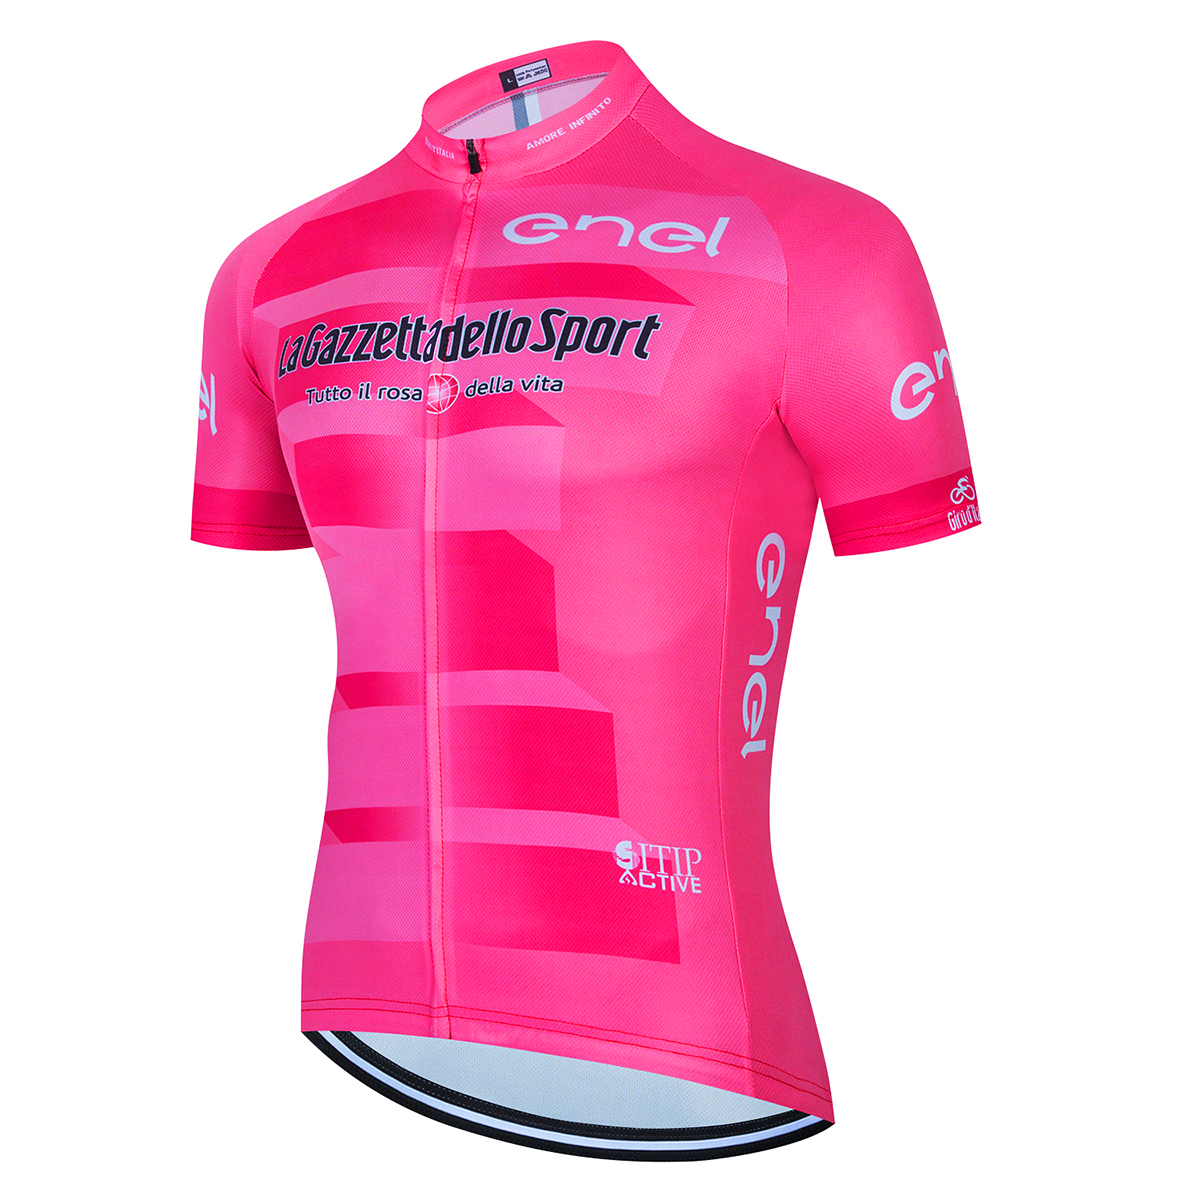 Tour de ITALY Pro Cycling Jersey Summer Breathable MTB Bike Clothes Short Sleeve Bicycle Clothing Hombre Ropa Maillot Ciclismo